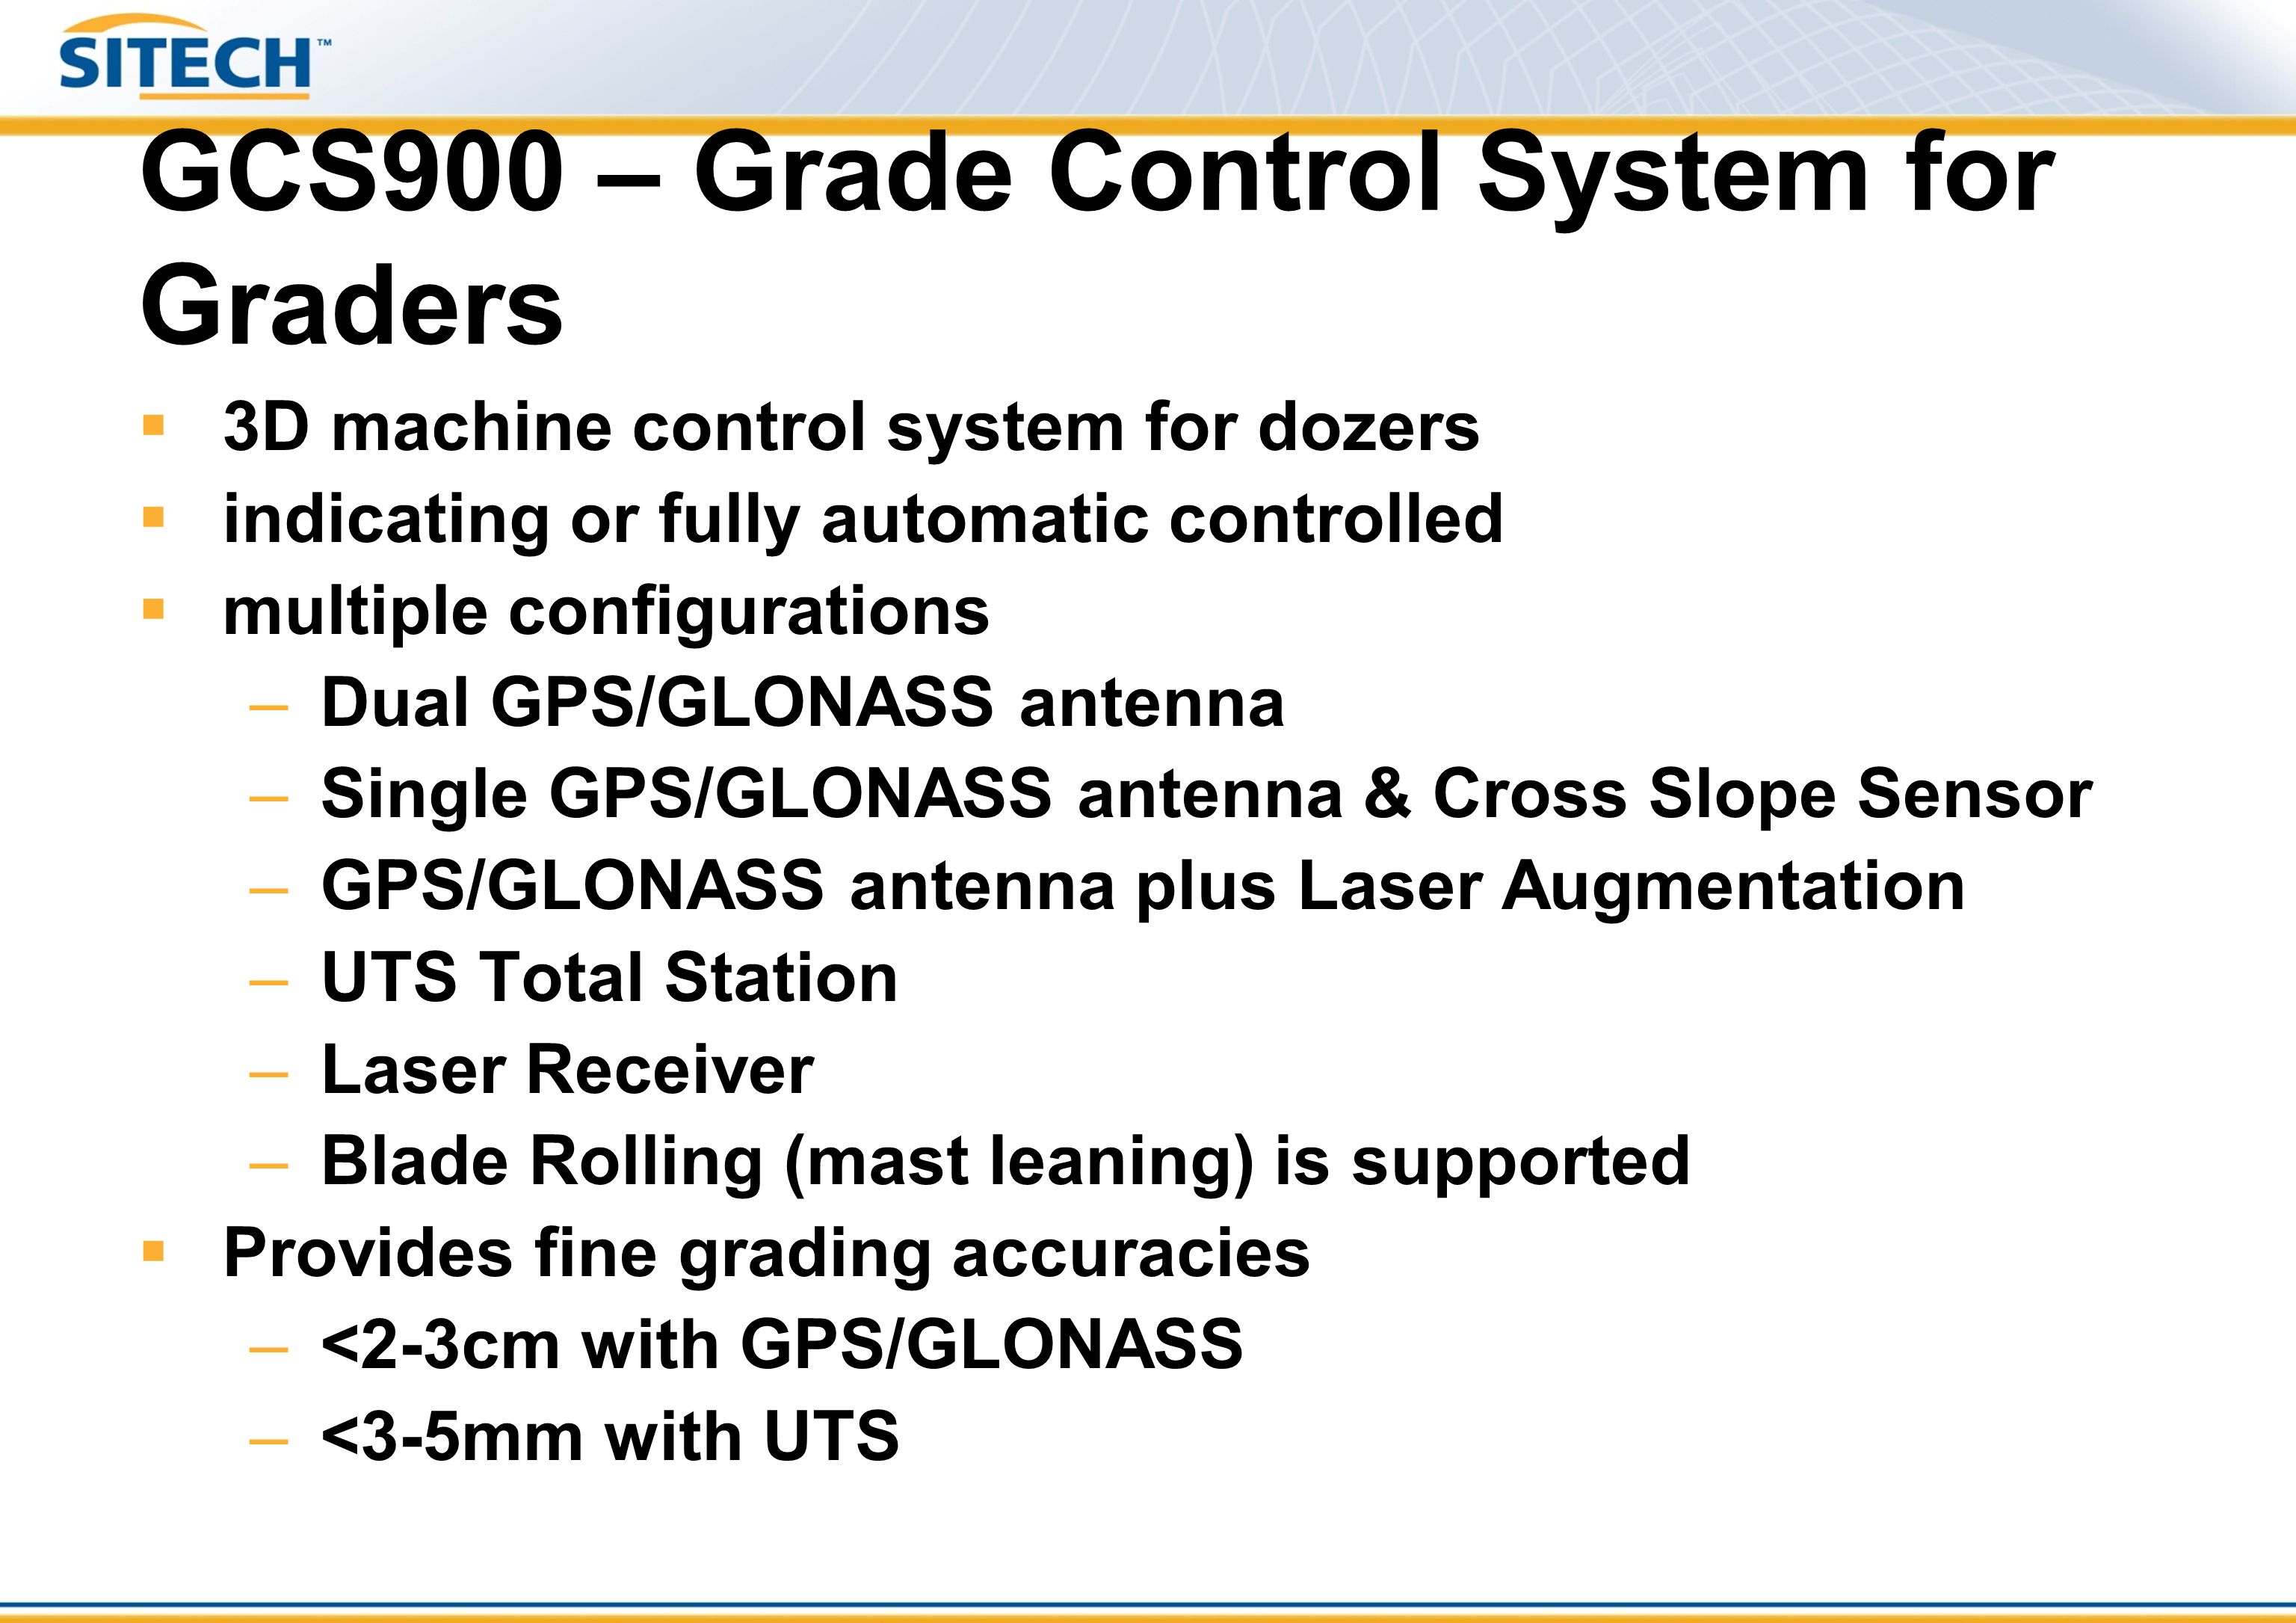 GCS900 – Grade Control System for Graders